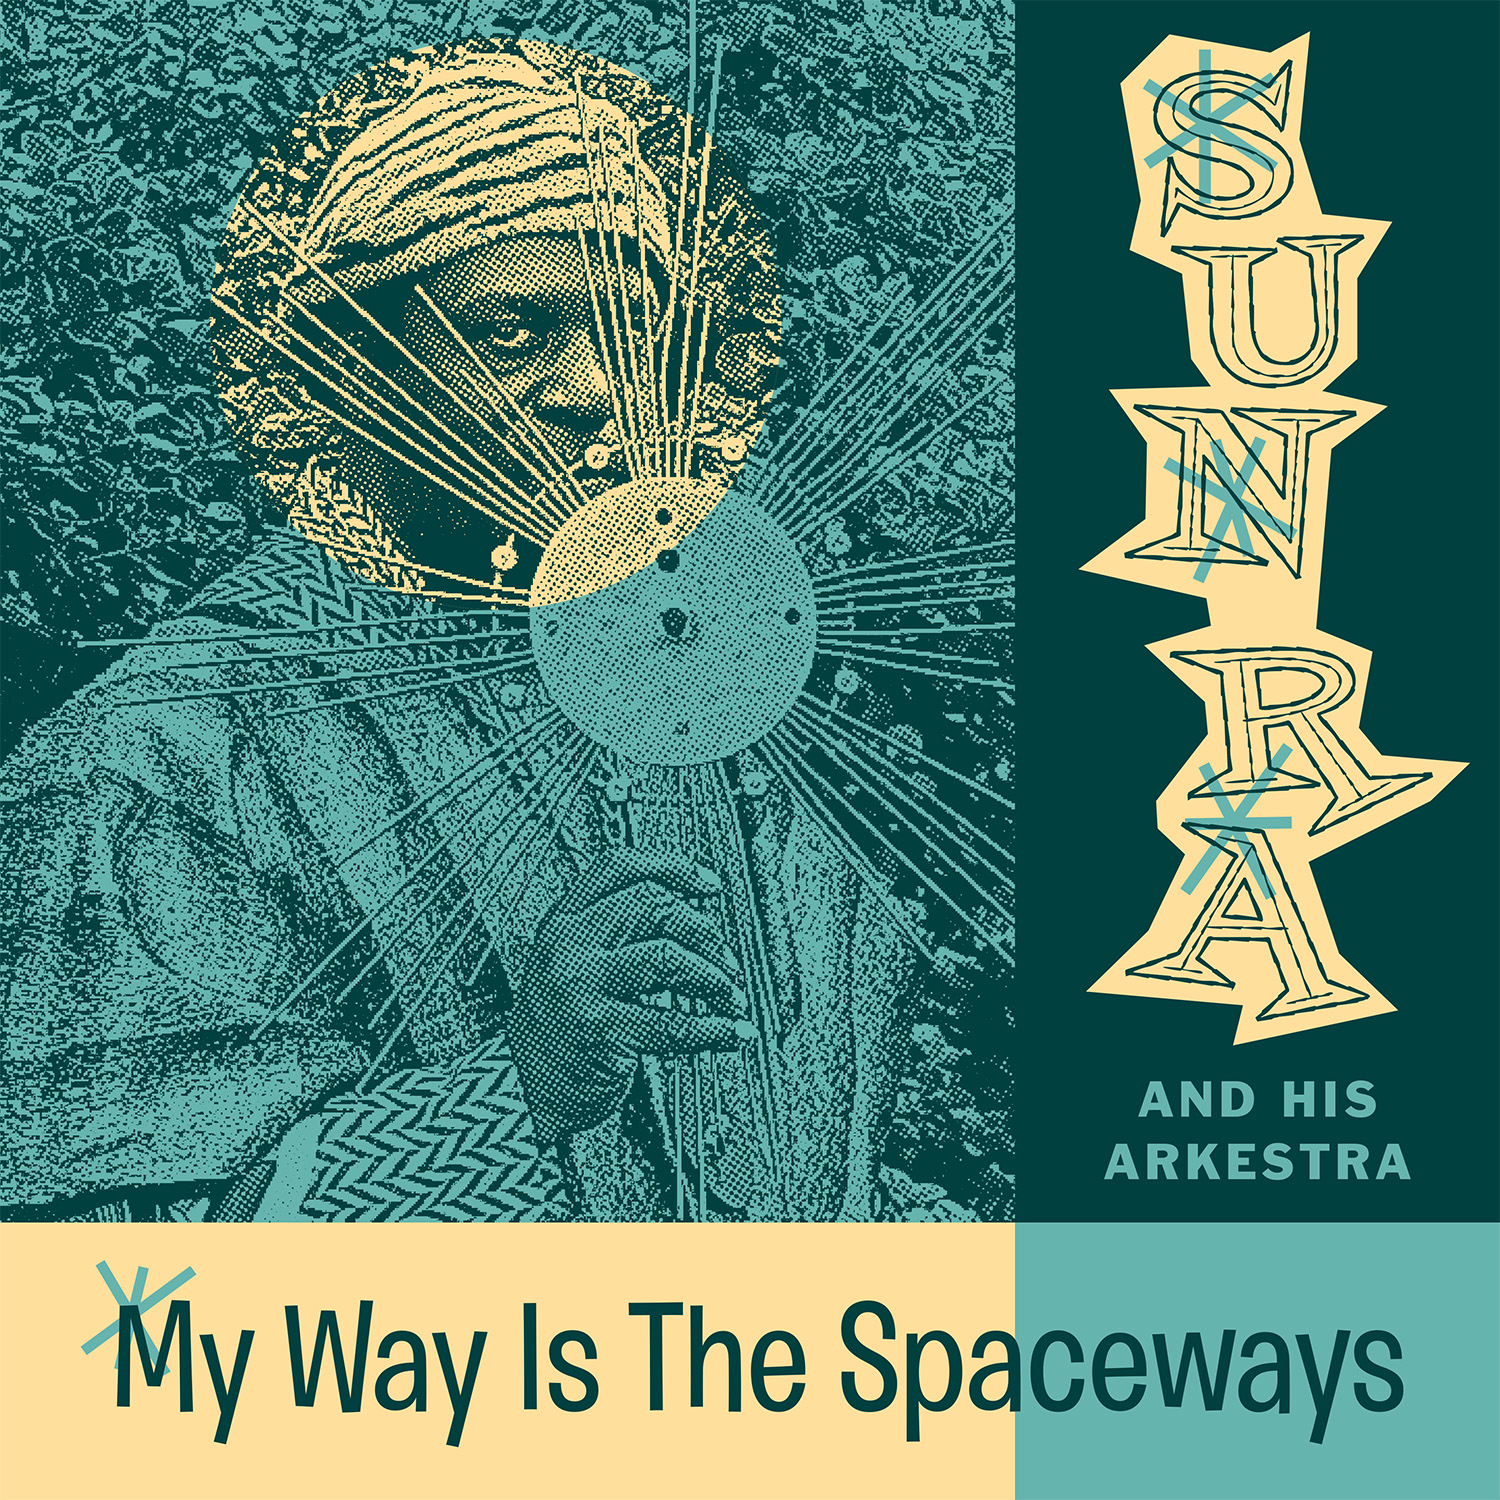 Sun Ra - My Way is the Spaceways LP cover